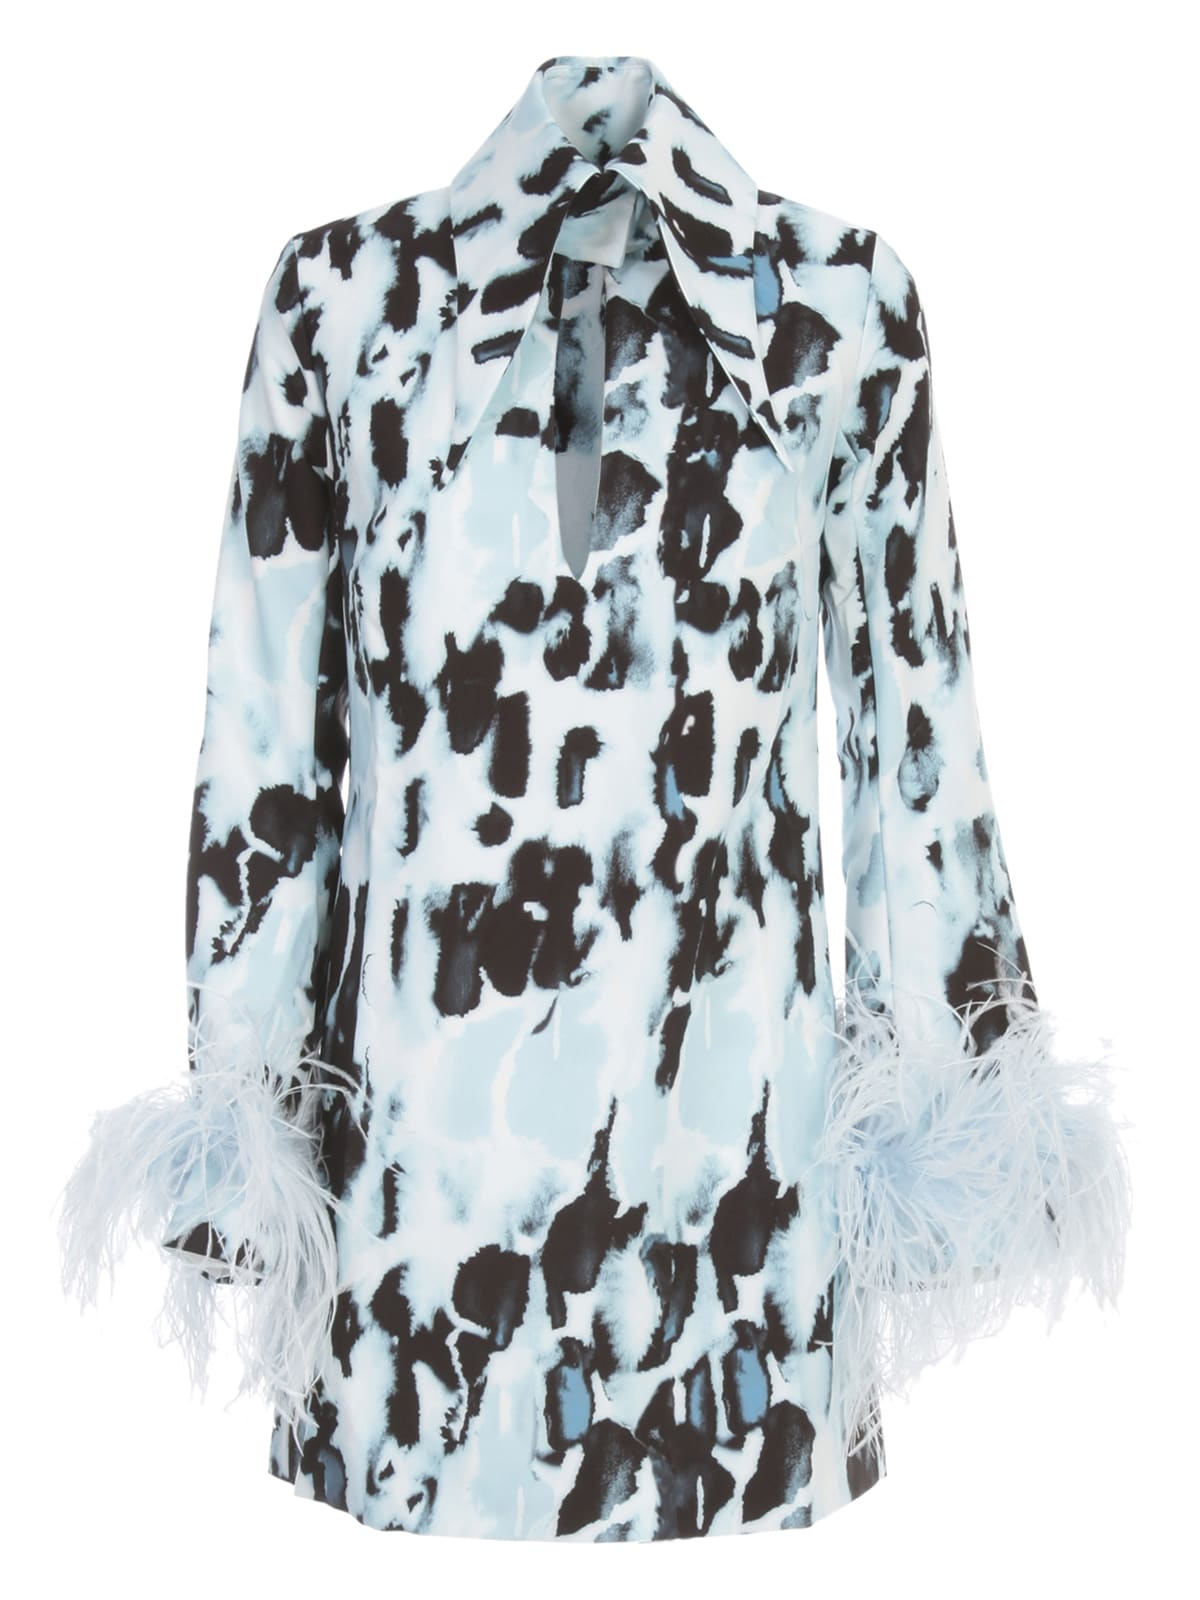 Buy 16arlington Michelle Printed Dress W/feathers On Sleeves online, shop 16arlington with free shipping